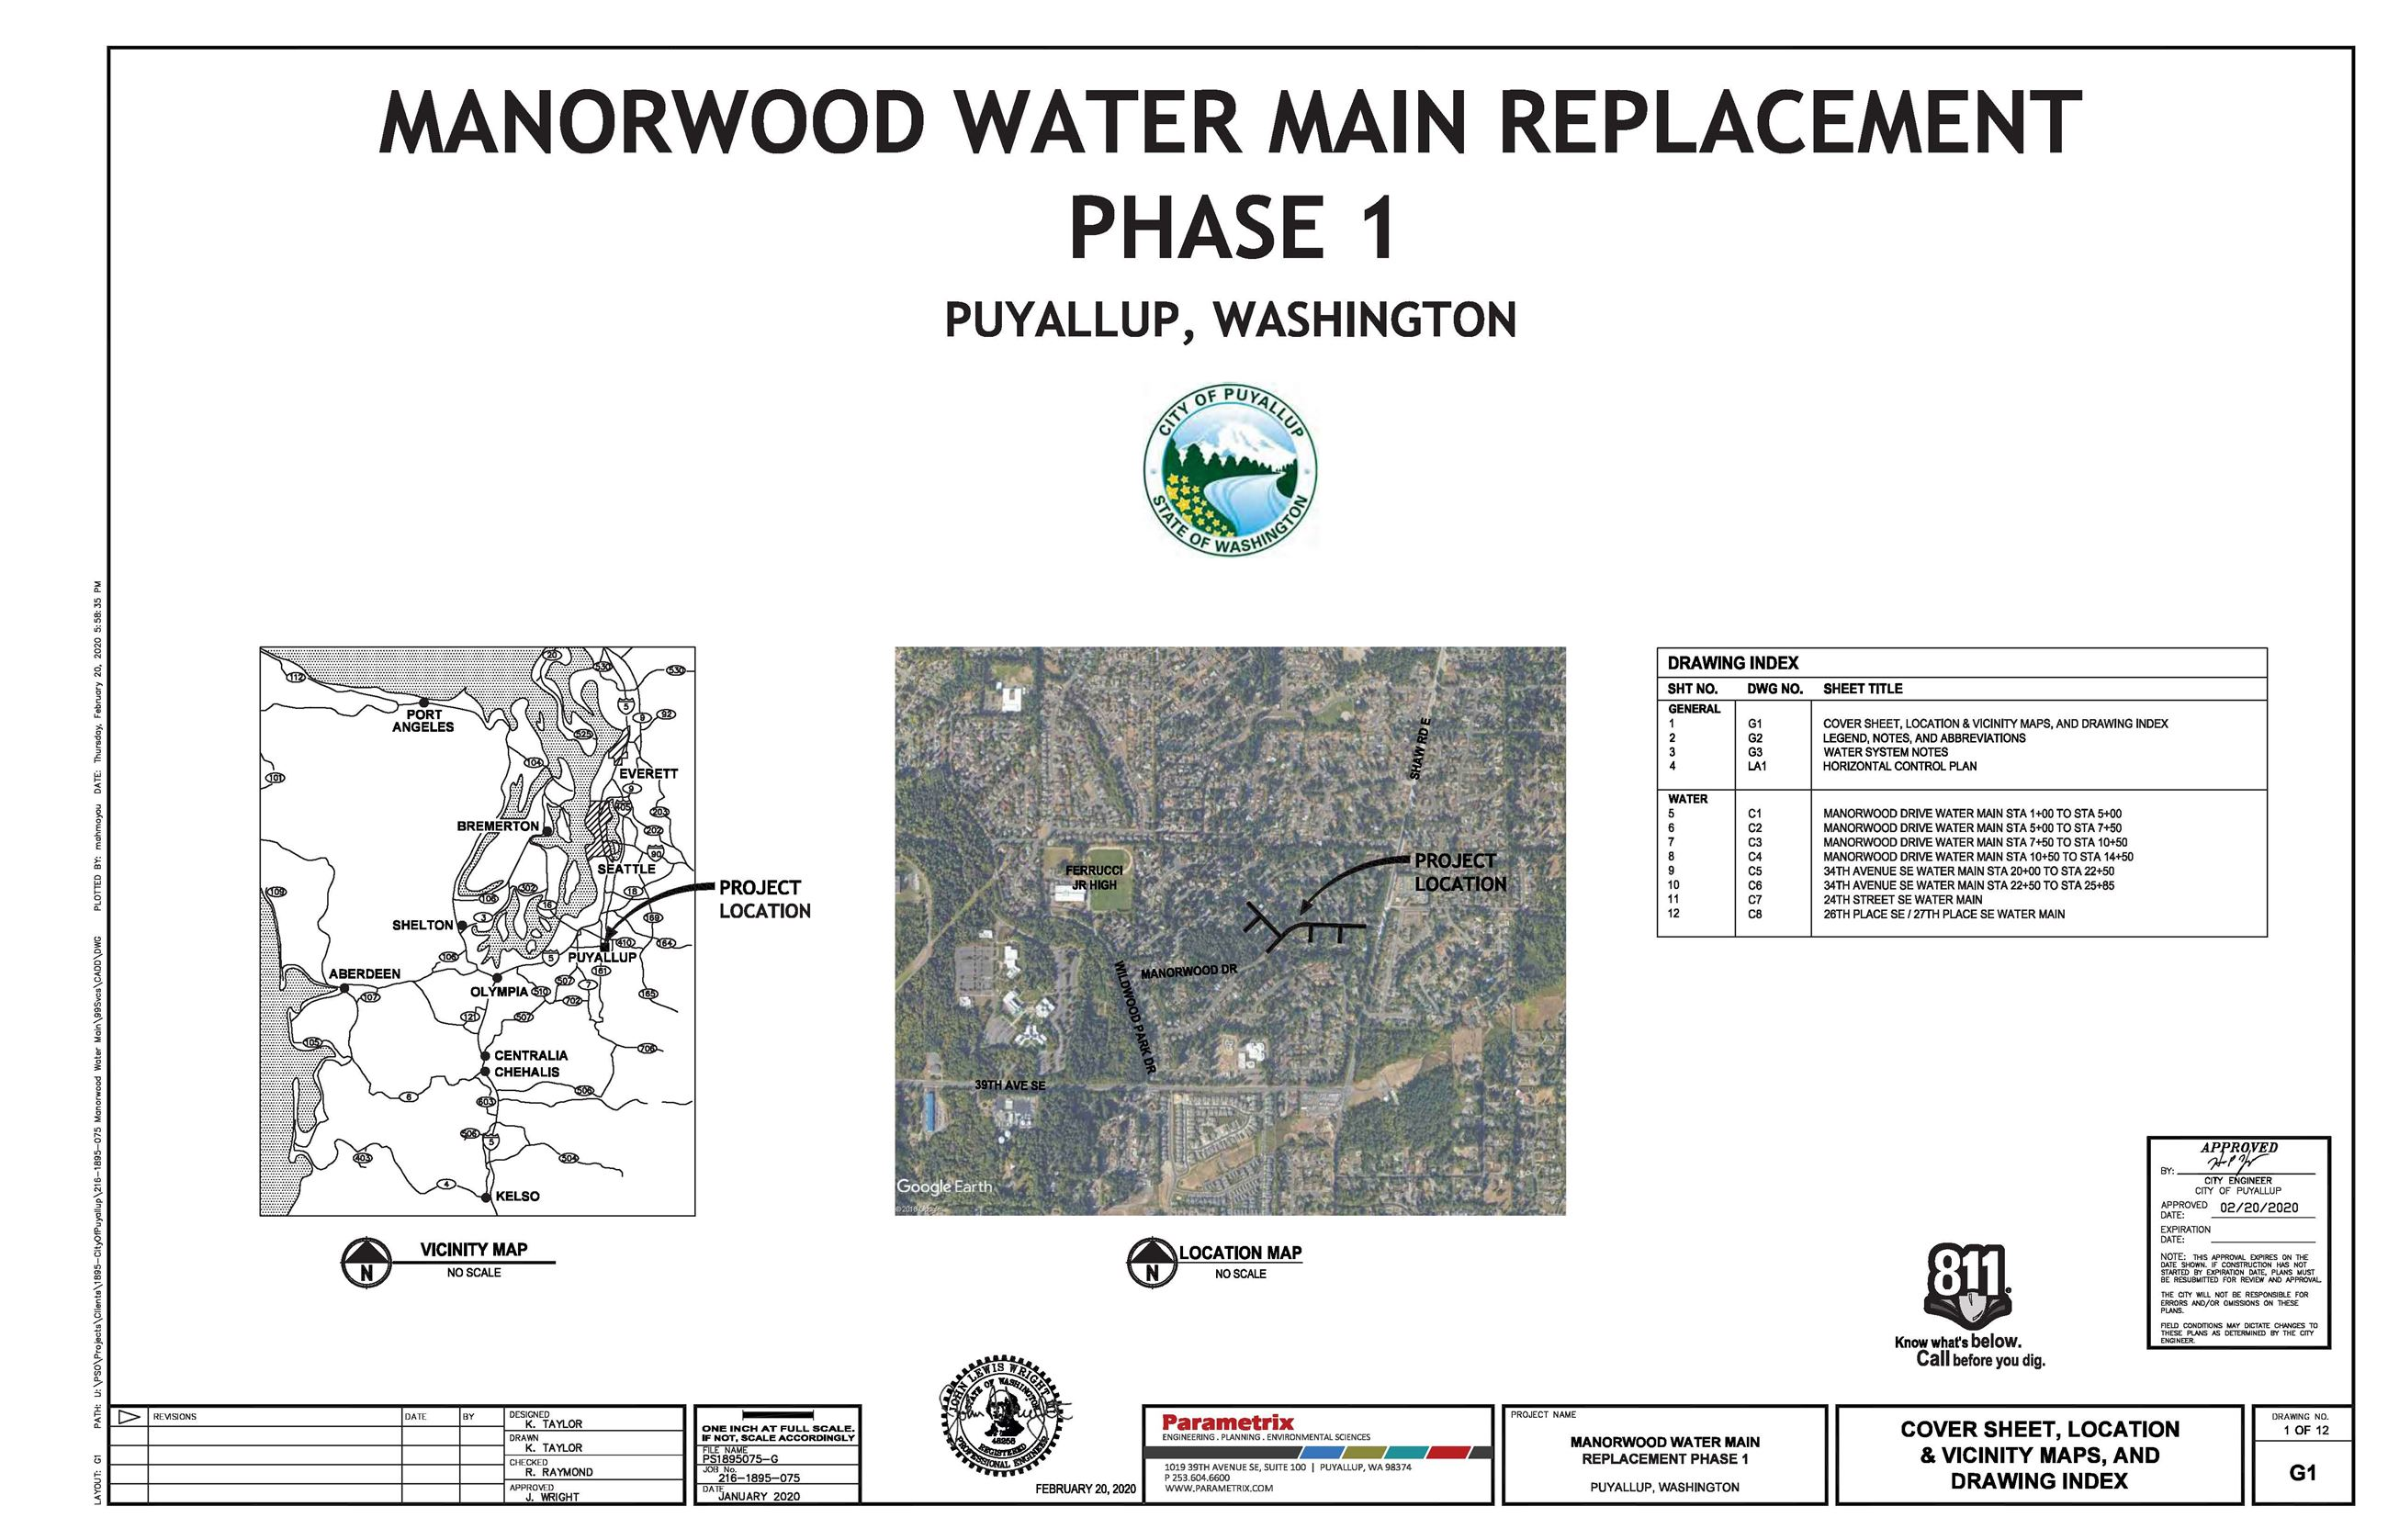 Manorwood Water Main Replacement, Phase 1